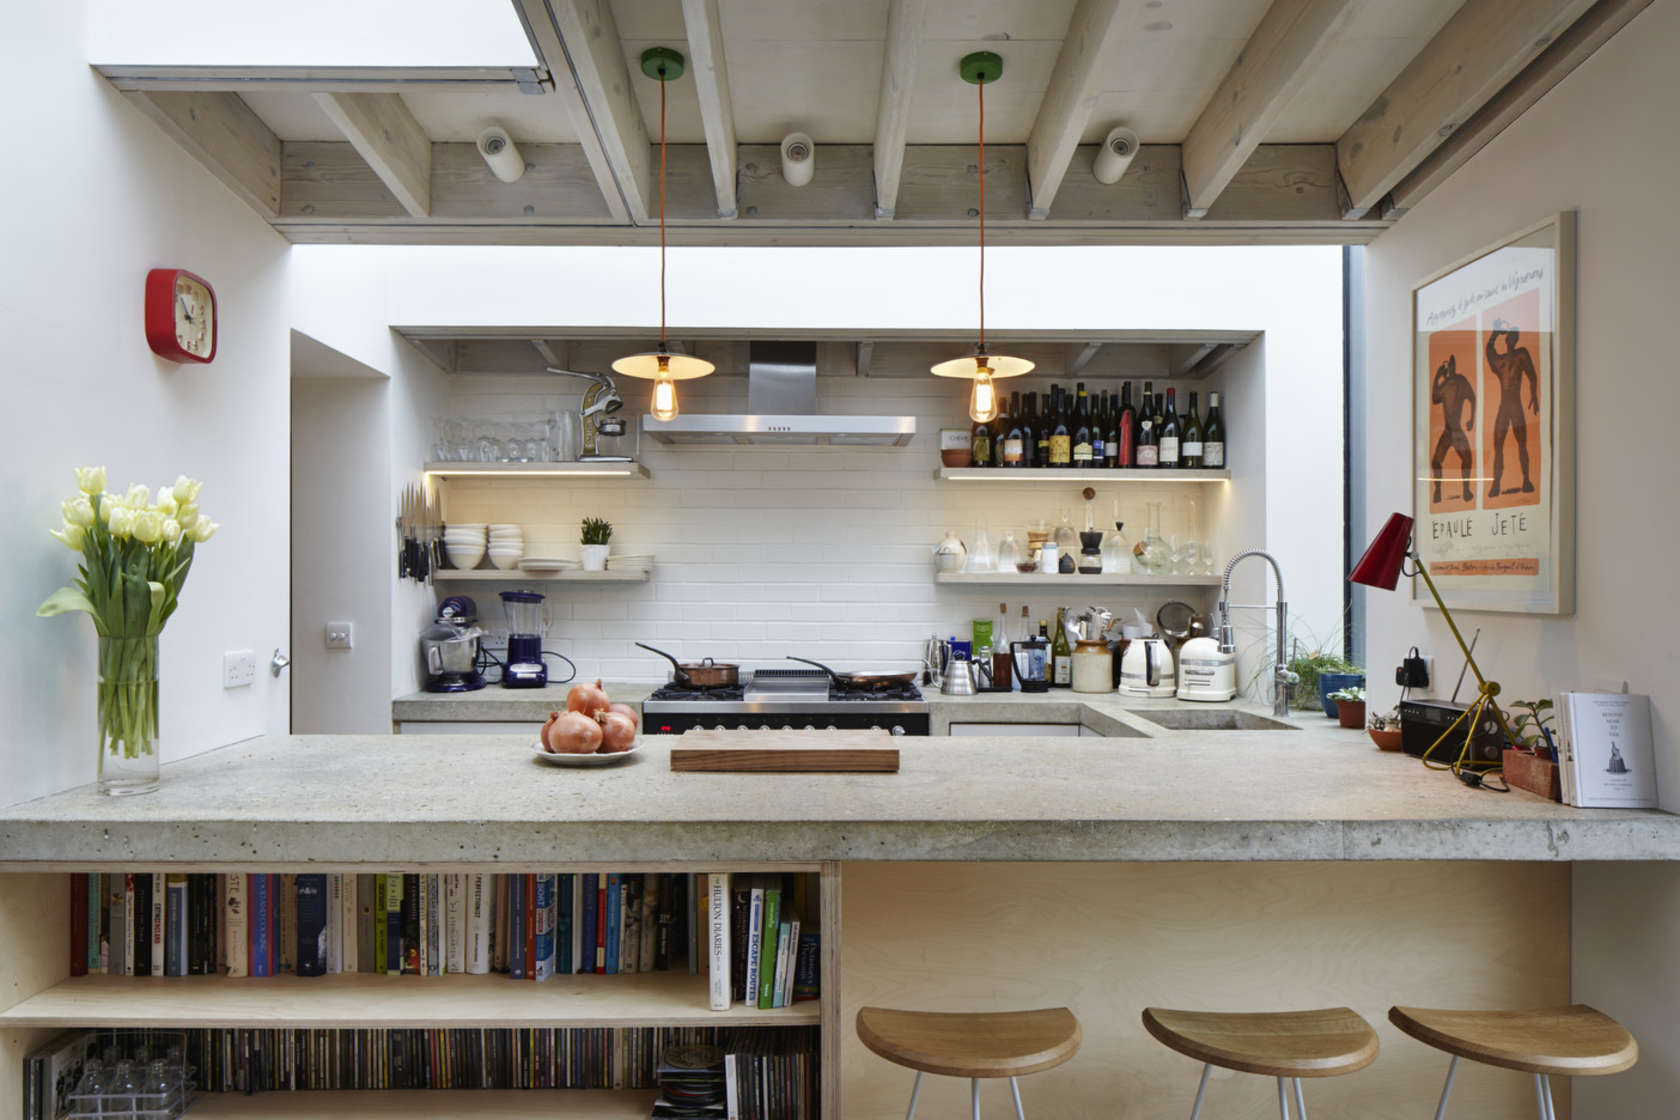 20 sleek kitchen designs with a beautiful simplicity rh home designing com